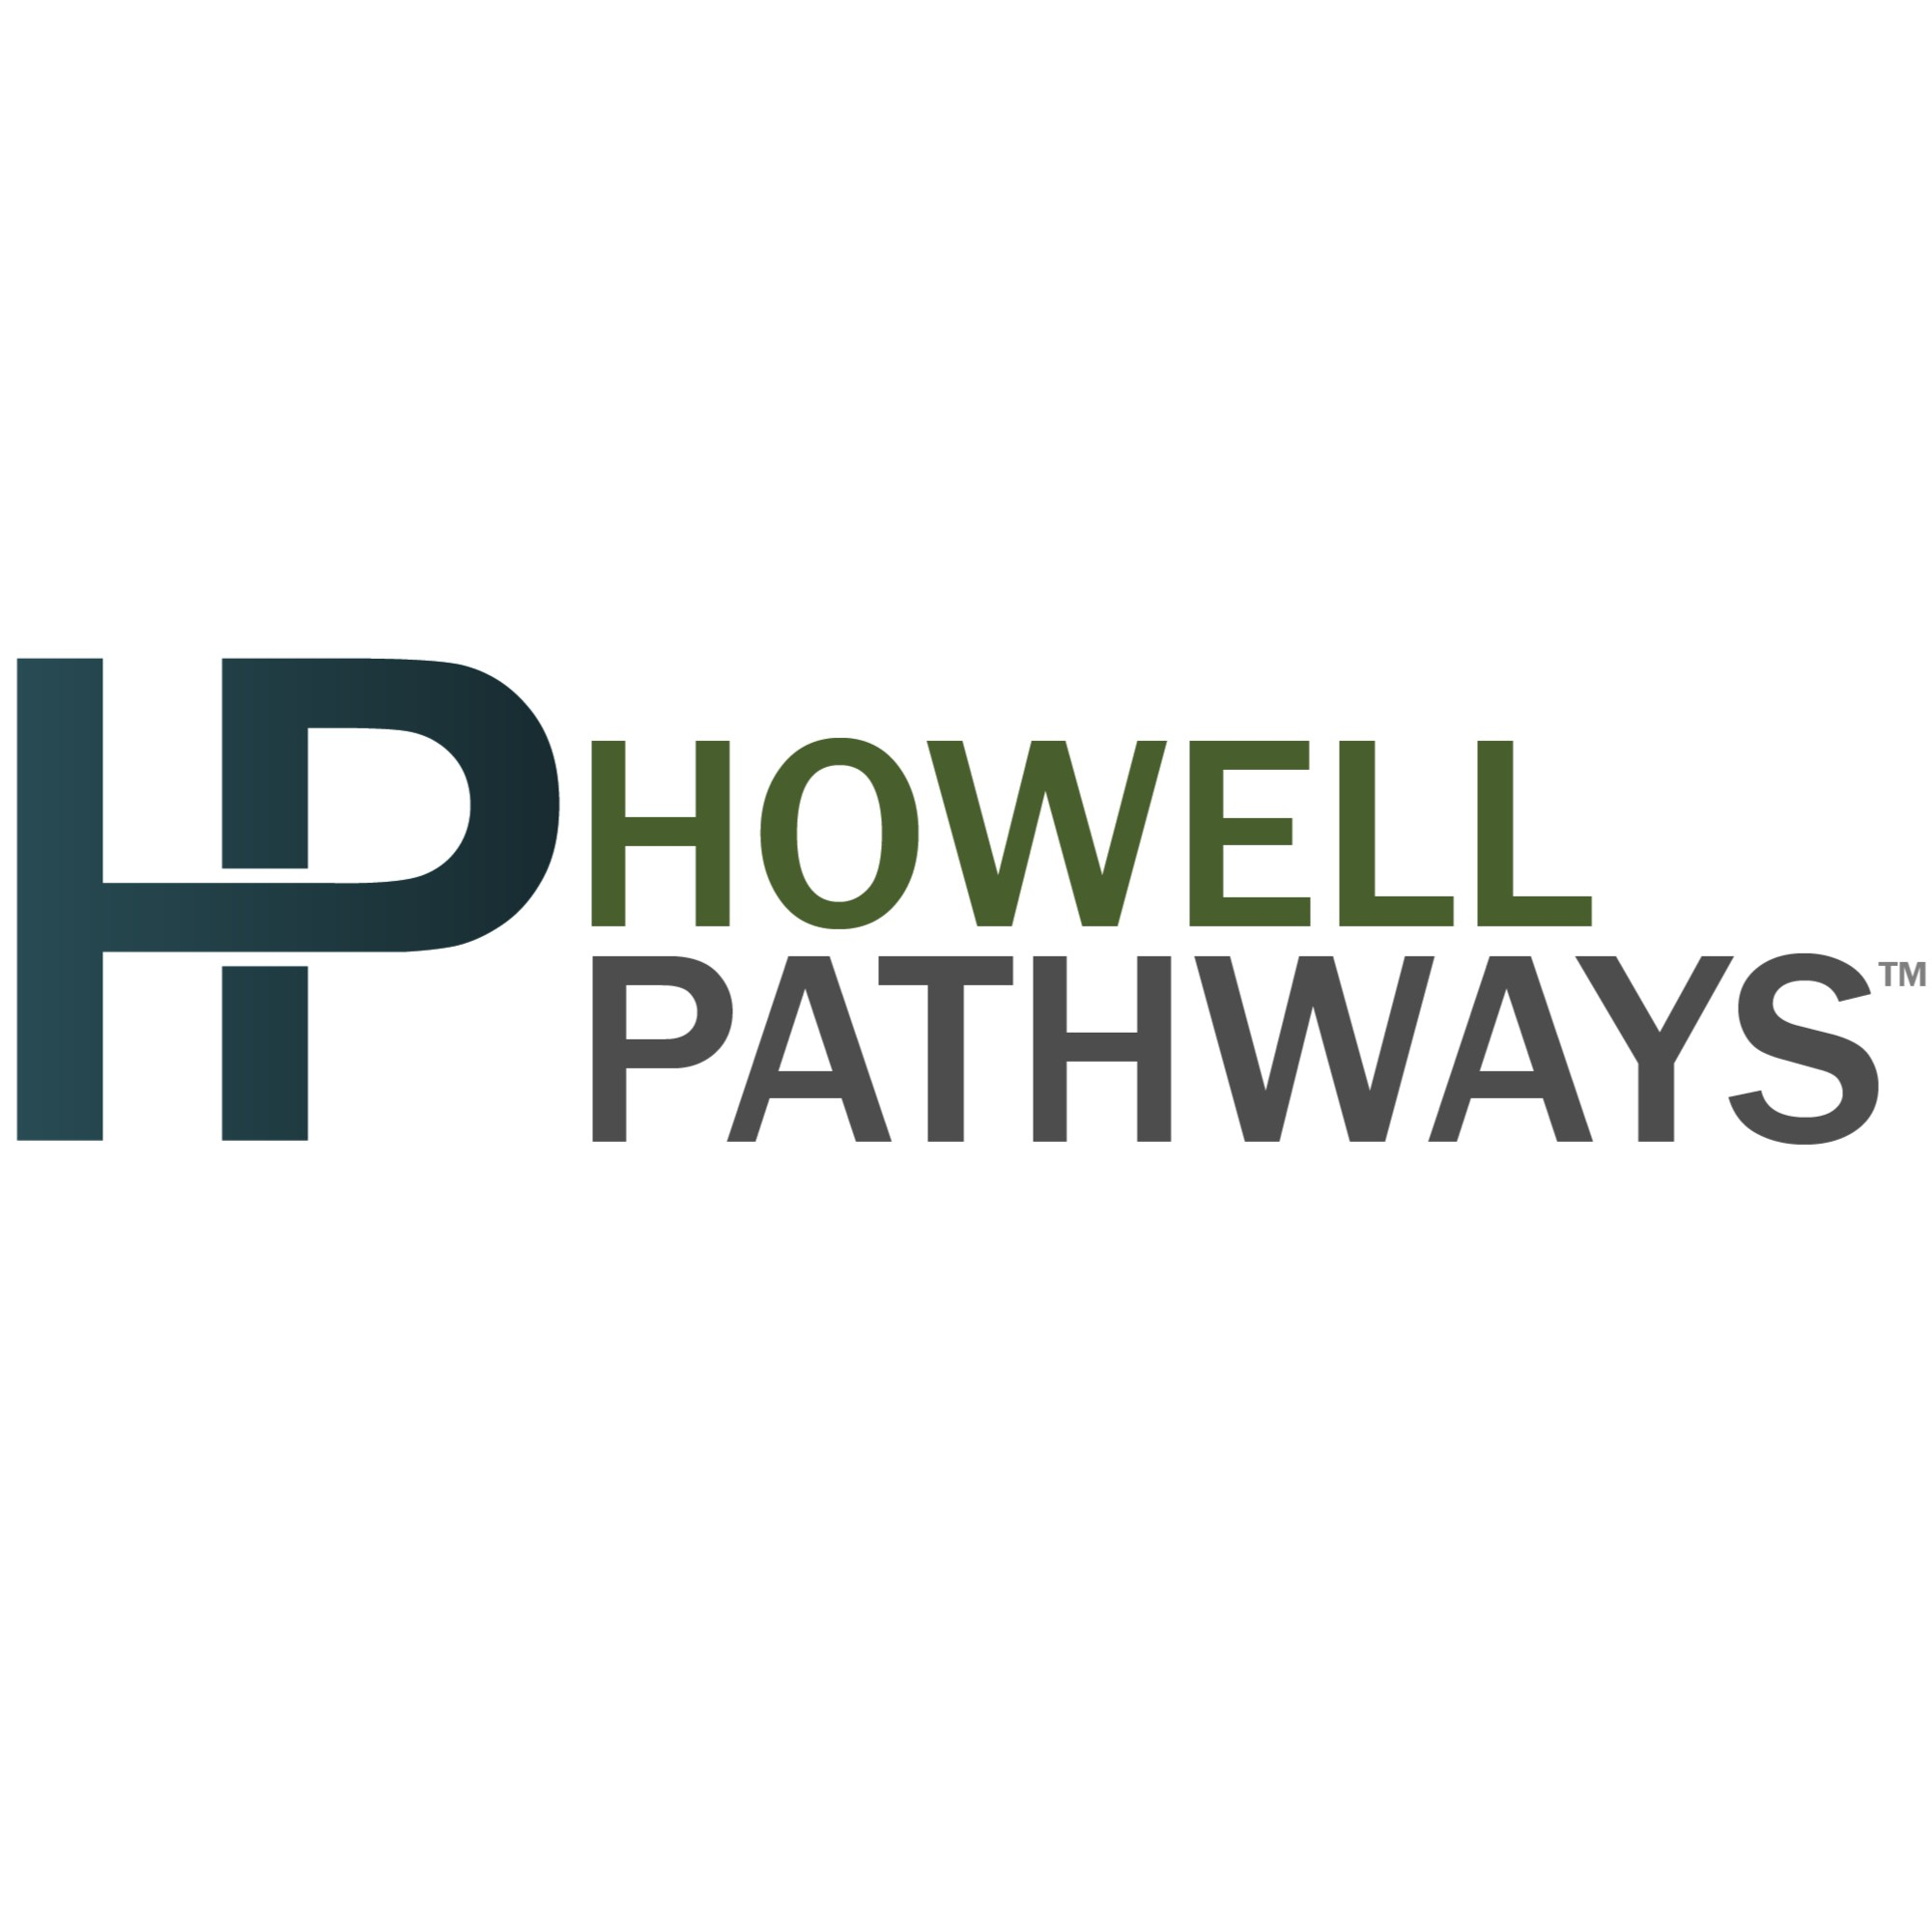 Howell Pathways - Nacogdoches, TX - Landscape Architects & Design